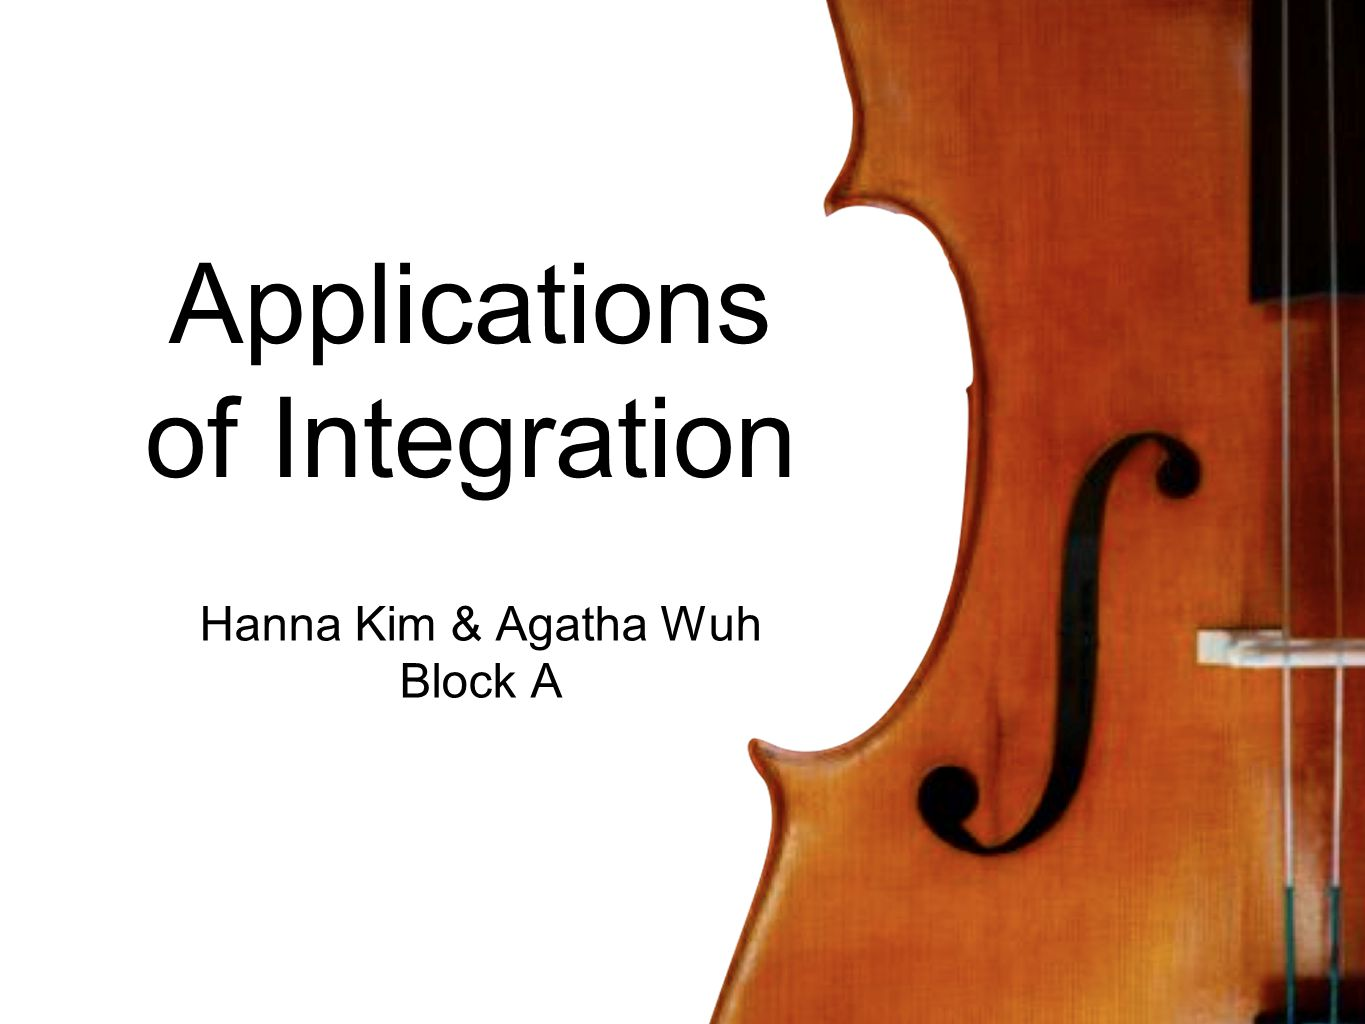 Applications of Integration Hanna Kim & Agatha Wuh Block A